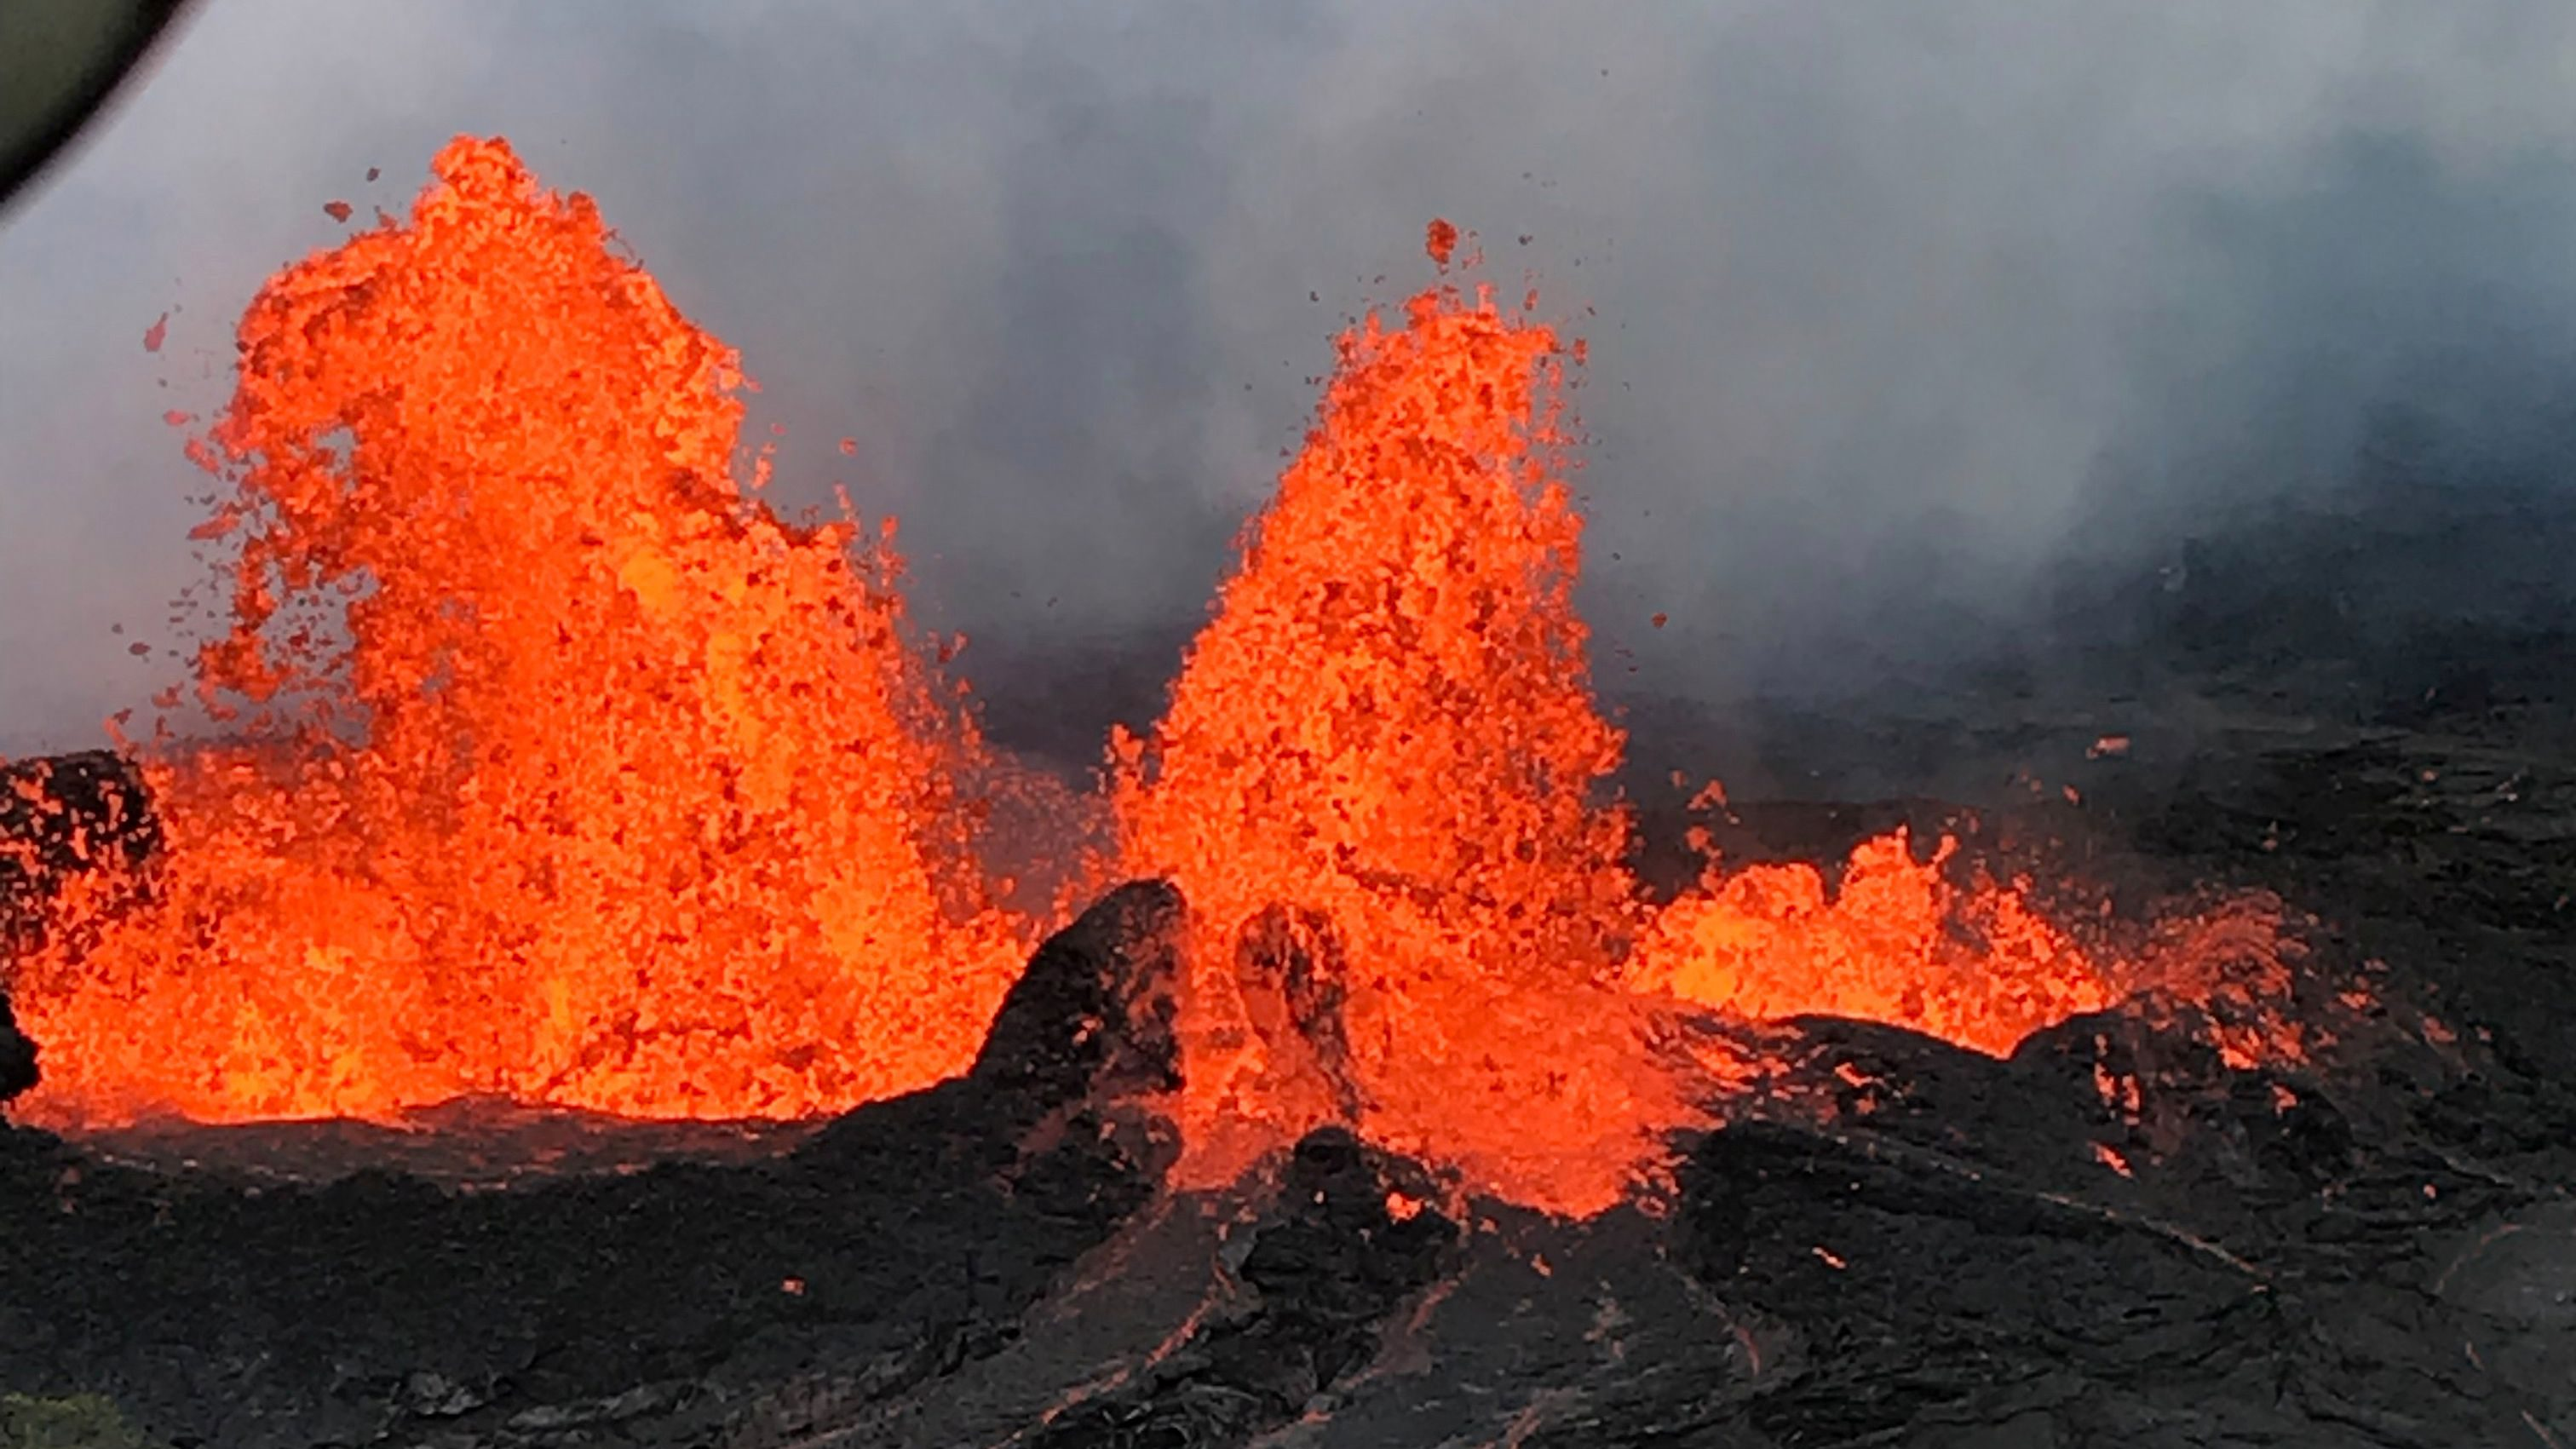 A lava fountain is observed from a helicopter flight over the Fissure 22 in Kilauea Volcano's Lower East Rift Zone during ongoing eruptions of the Kilauea Volcano in Hawaii, U.S. May 21, 2018.   Picture taken on May 21, 2018.   USGS/Handout via REUTERS    ATTENTION EDITORS - THIS IMAGE HAS BEEN SUPPLIED BY A THIRD PARTY. - RC13676F5EE0